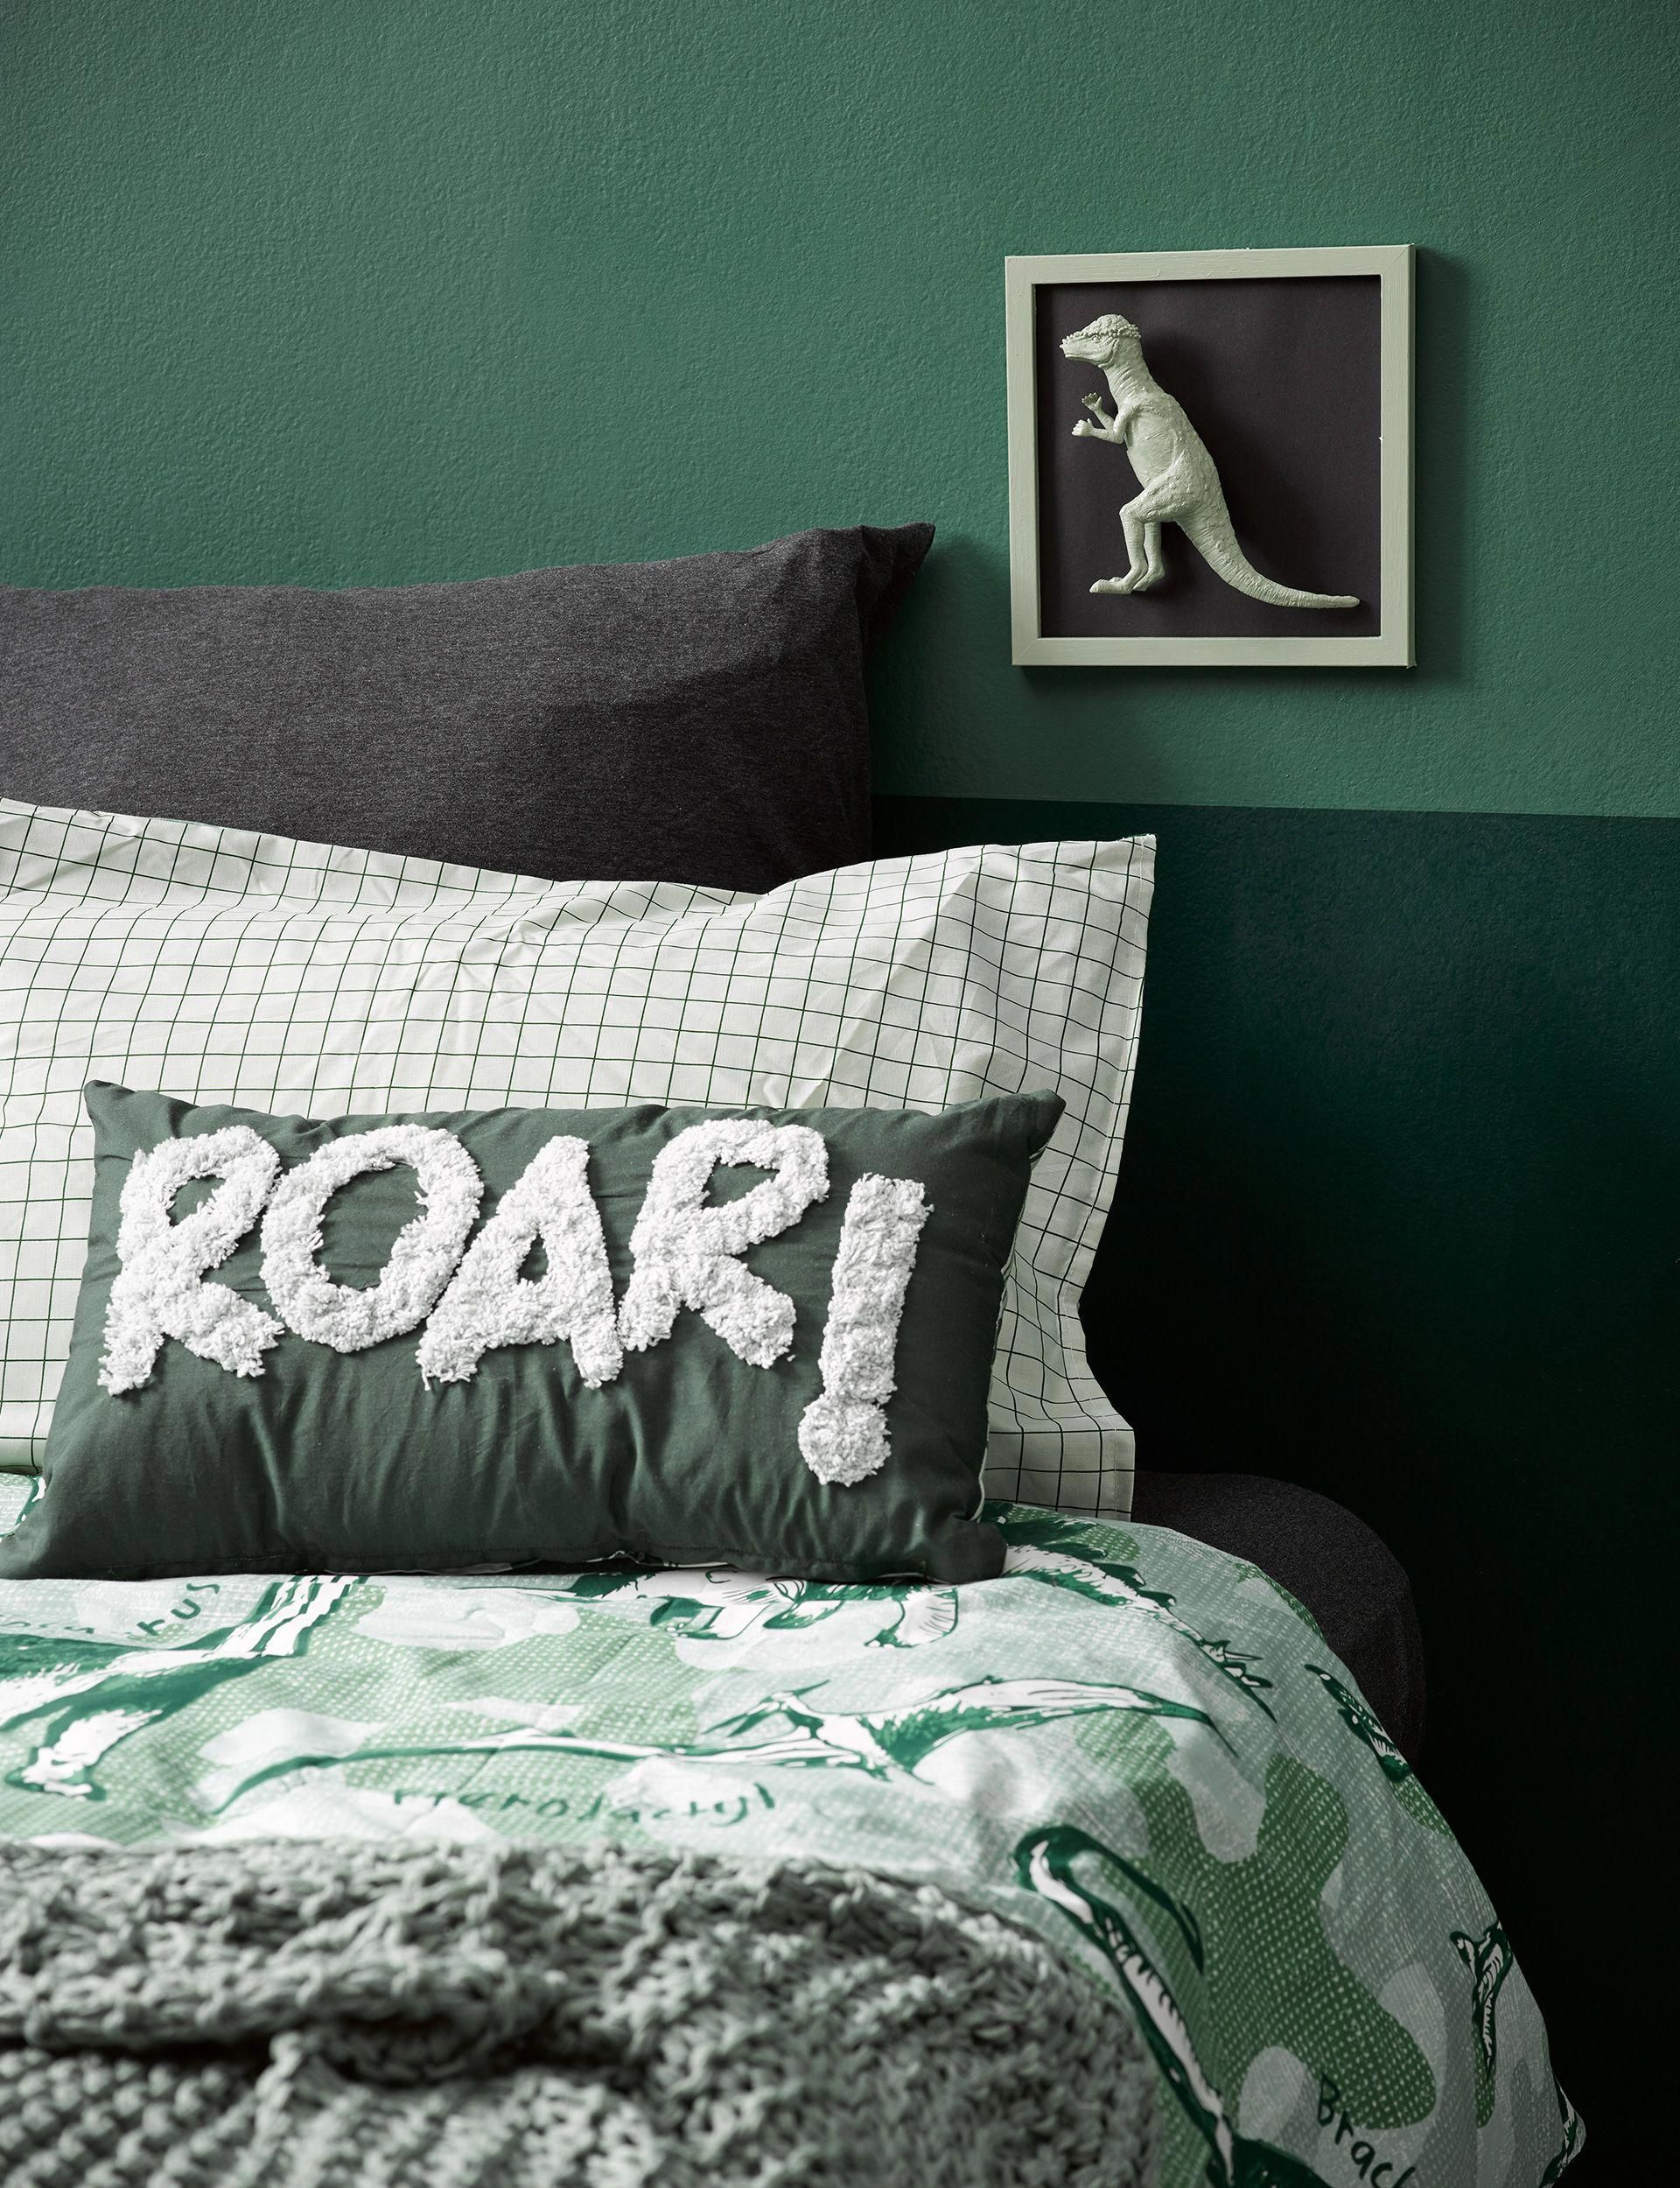 How to decorate your kid's bedroom with a DIY dinosaur theme #kidsbedroom